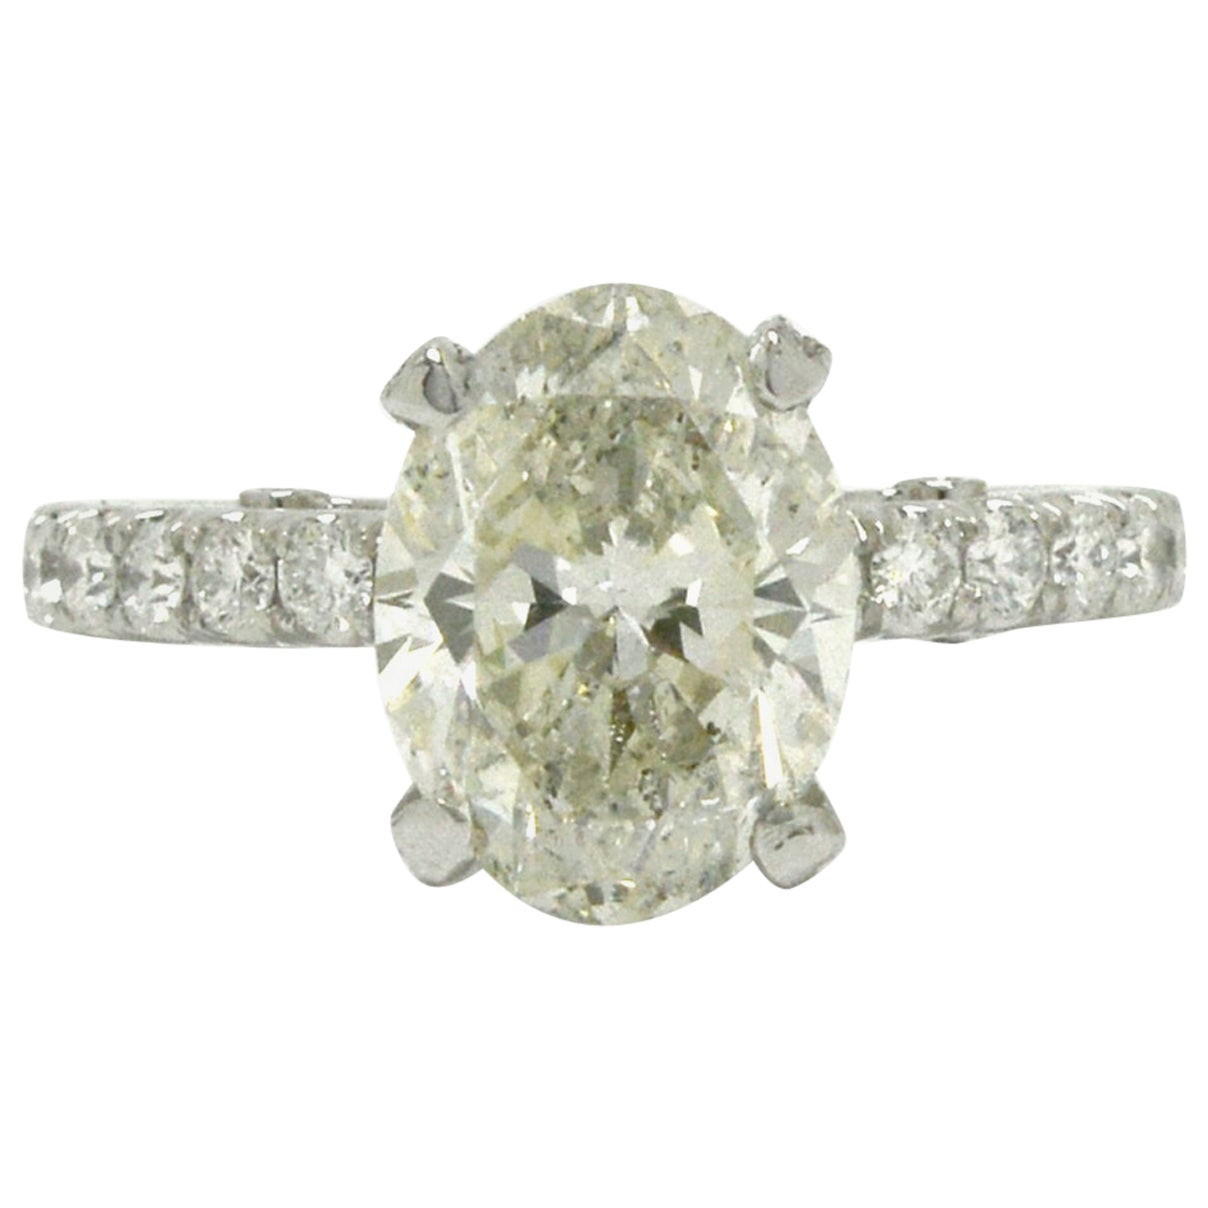 Certified Over 3 Carat Oval Diamond Solitaire Engagement Ring Platinum Band